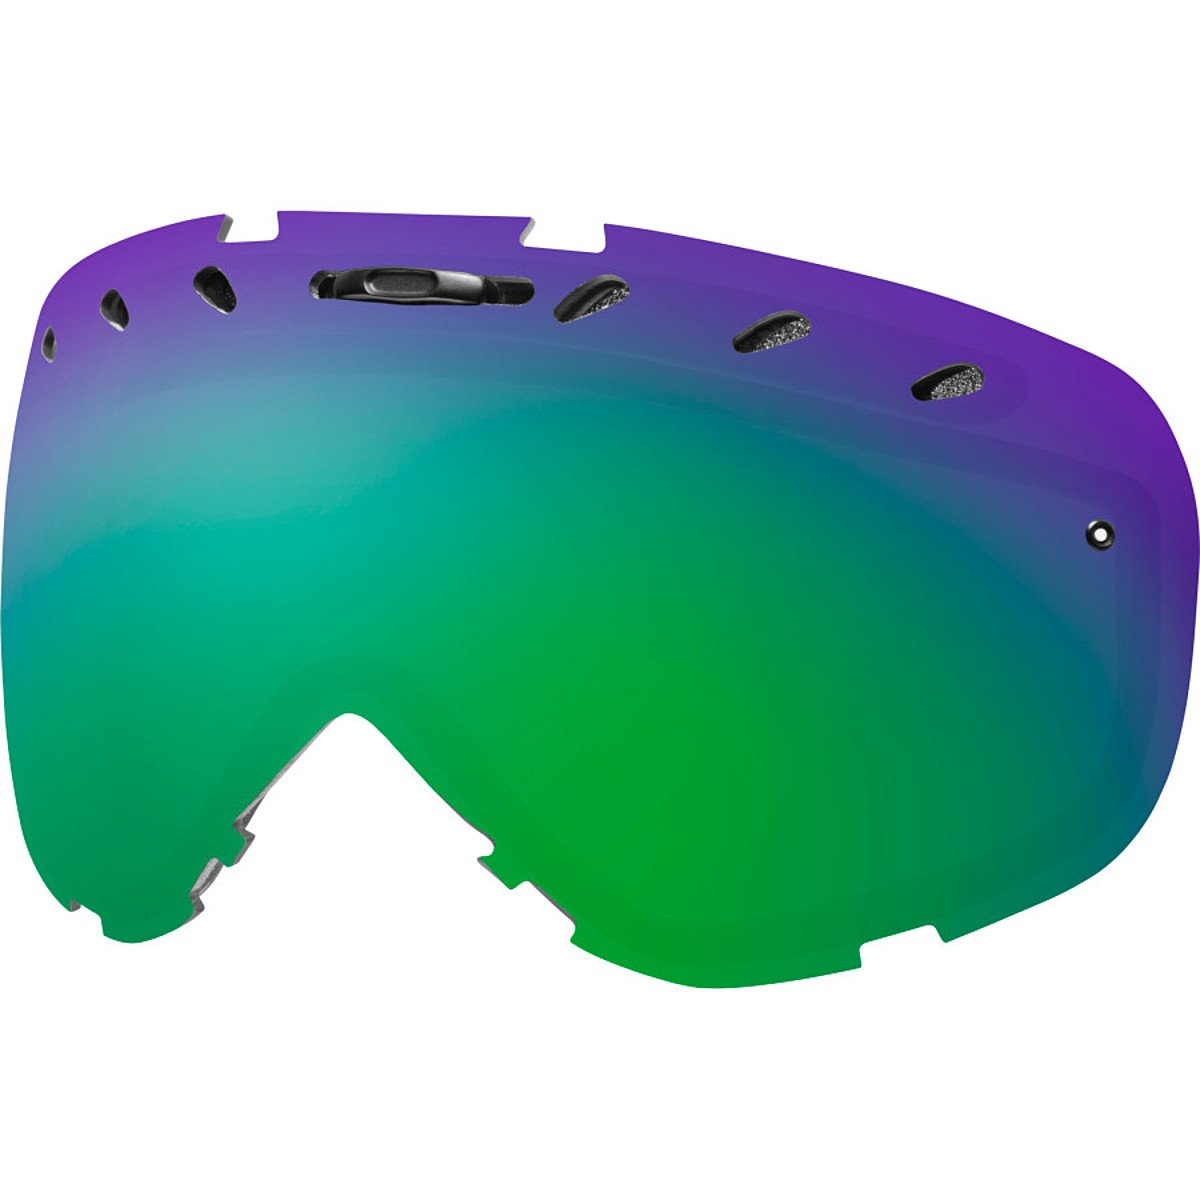 SMITH OPTICS PHENOM LENS GREEN SOL-X MIRROR VLT 15% ERSATZSCHEIBE